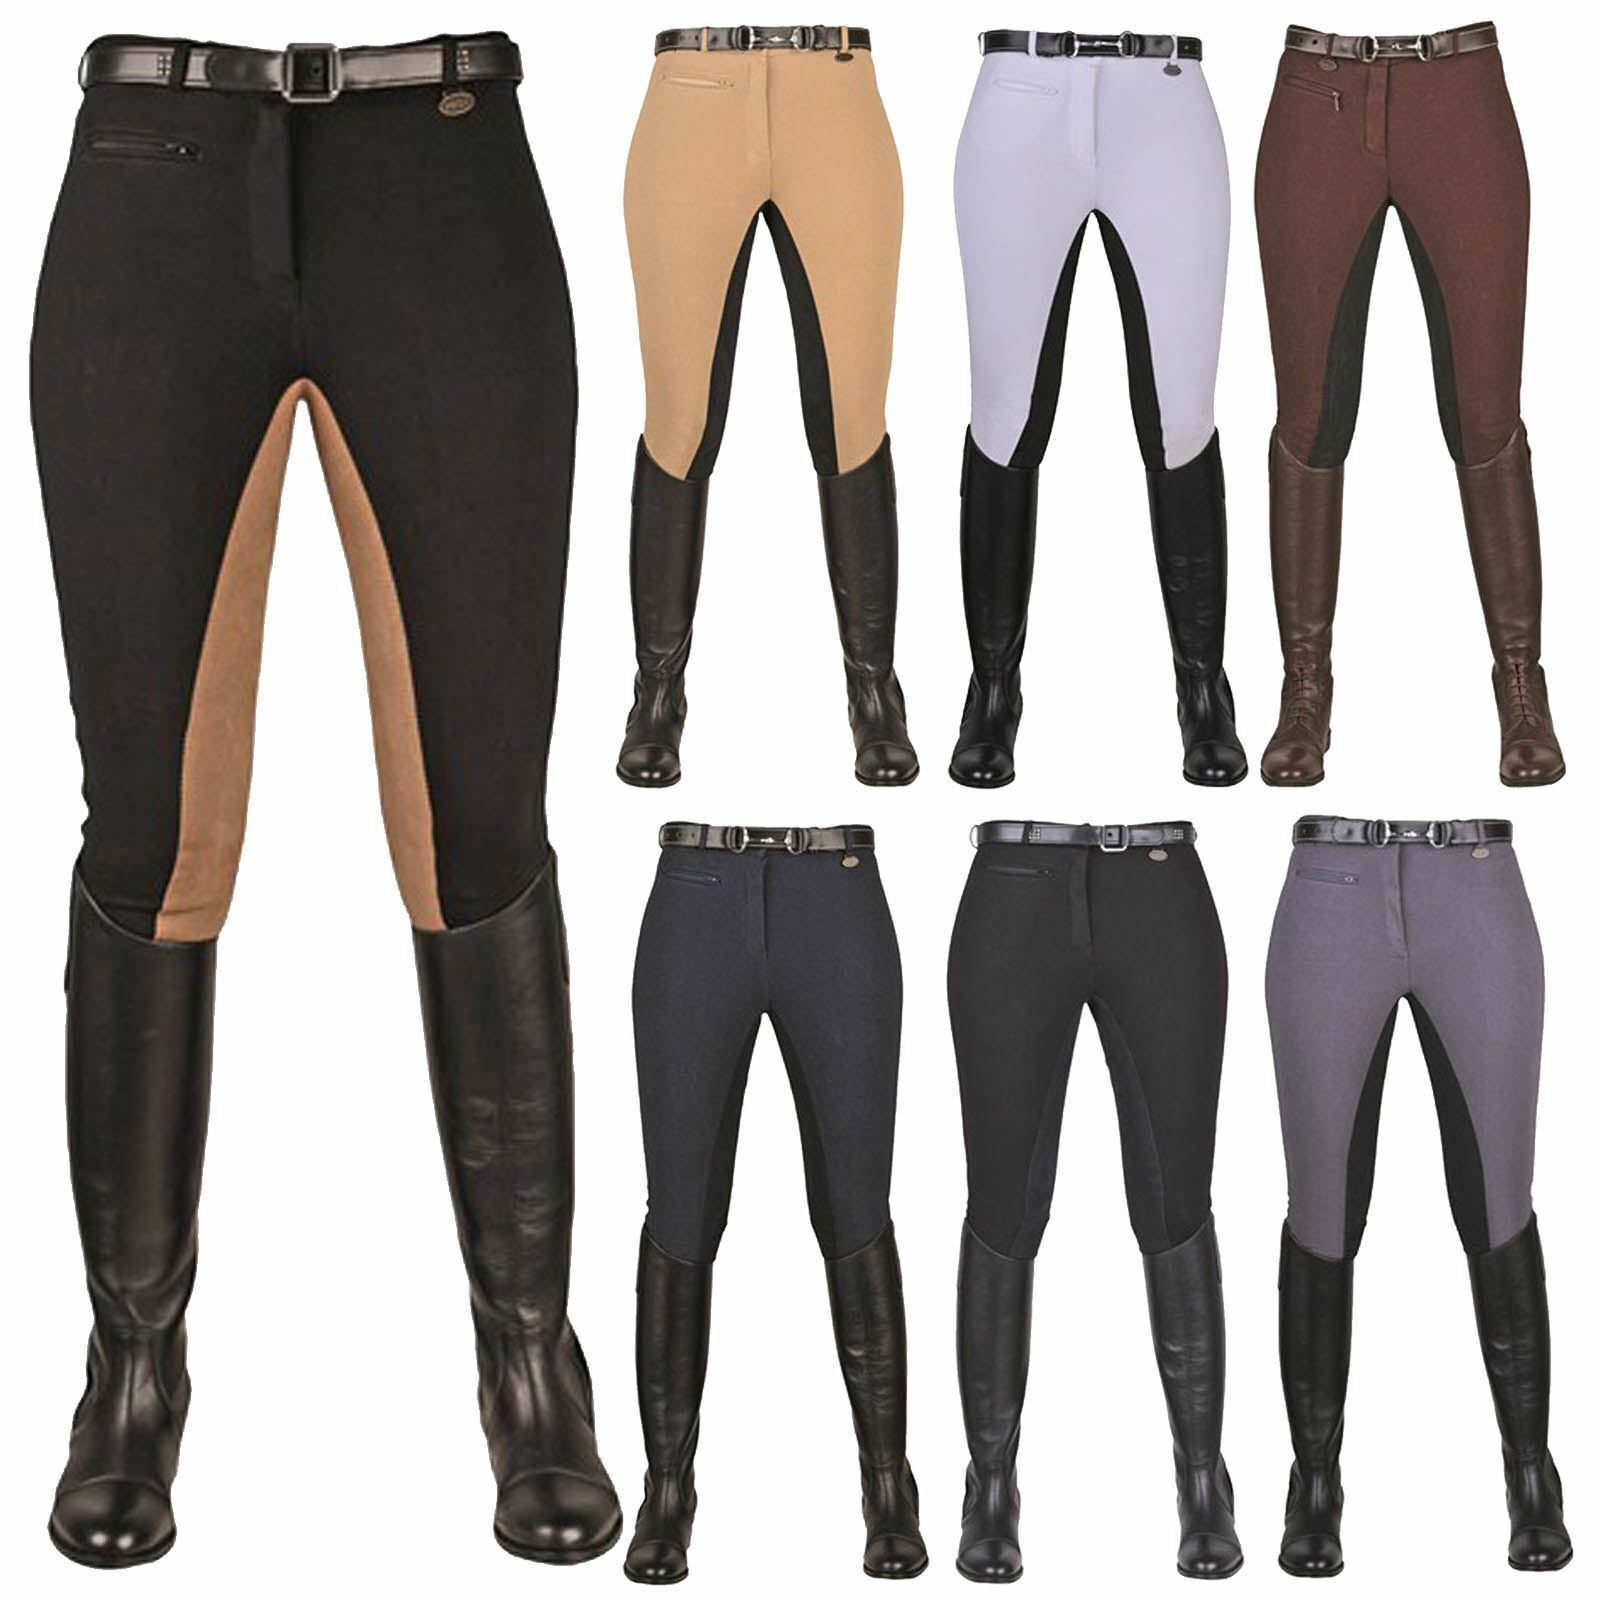 HKM Equestrian Ladies Junior Stretchy 3 4 Suede Imitation Seat Riding Breeches